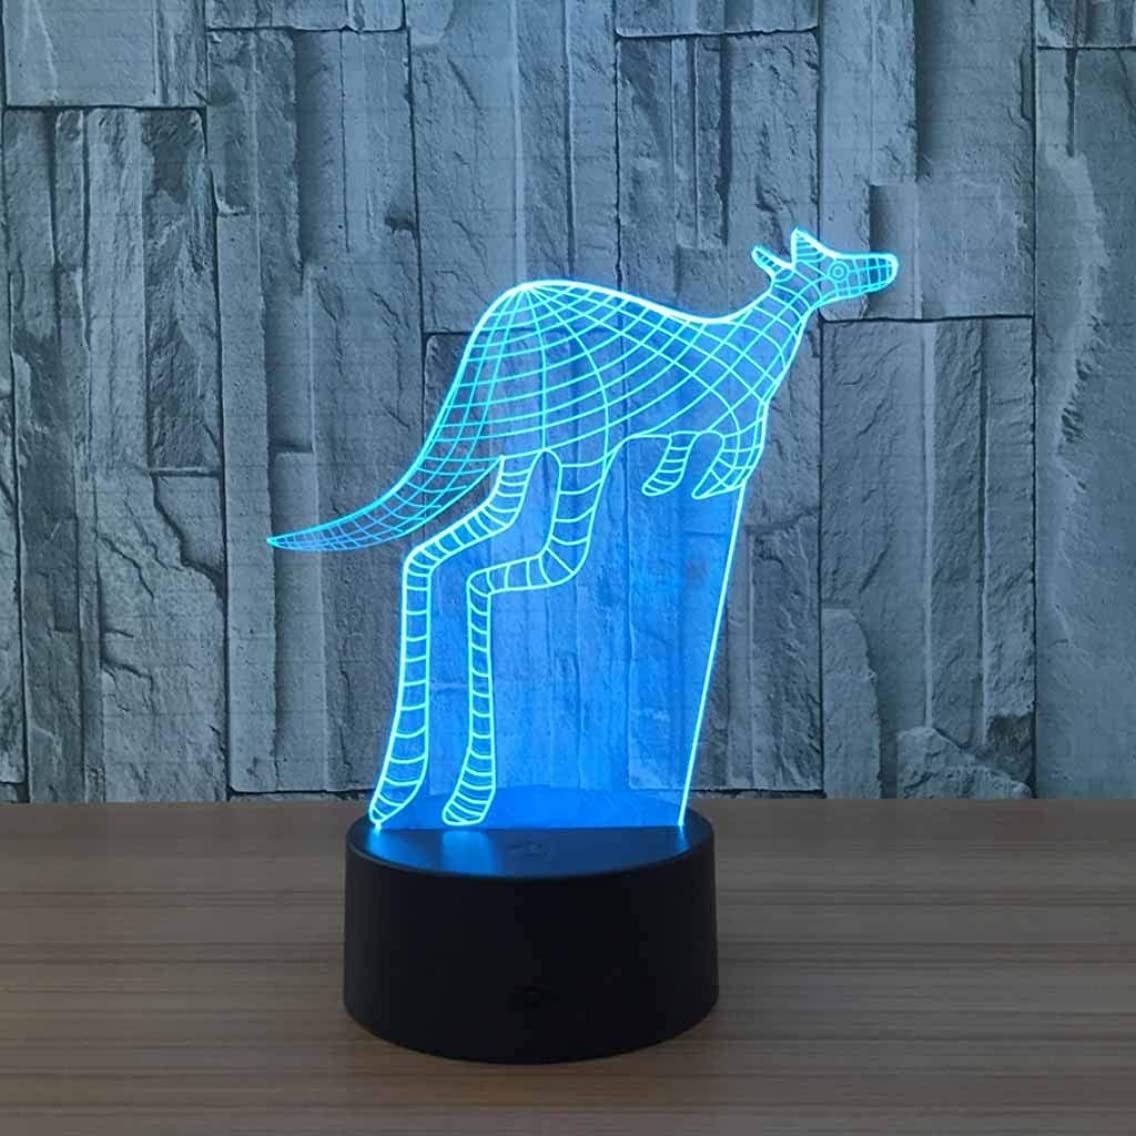 ZCXBHD 3D Illusion Lamp Kangaroo Led Night Light, USB Powered 7 Colours Flashing Touch Switch Bedroom Decoration Lighting for Kids